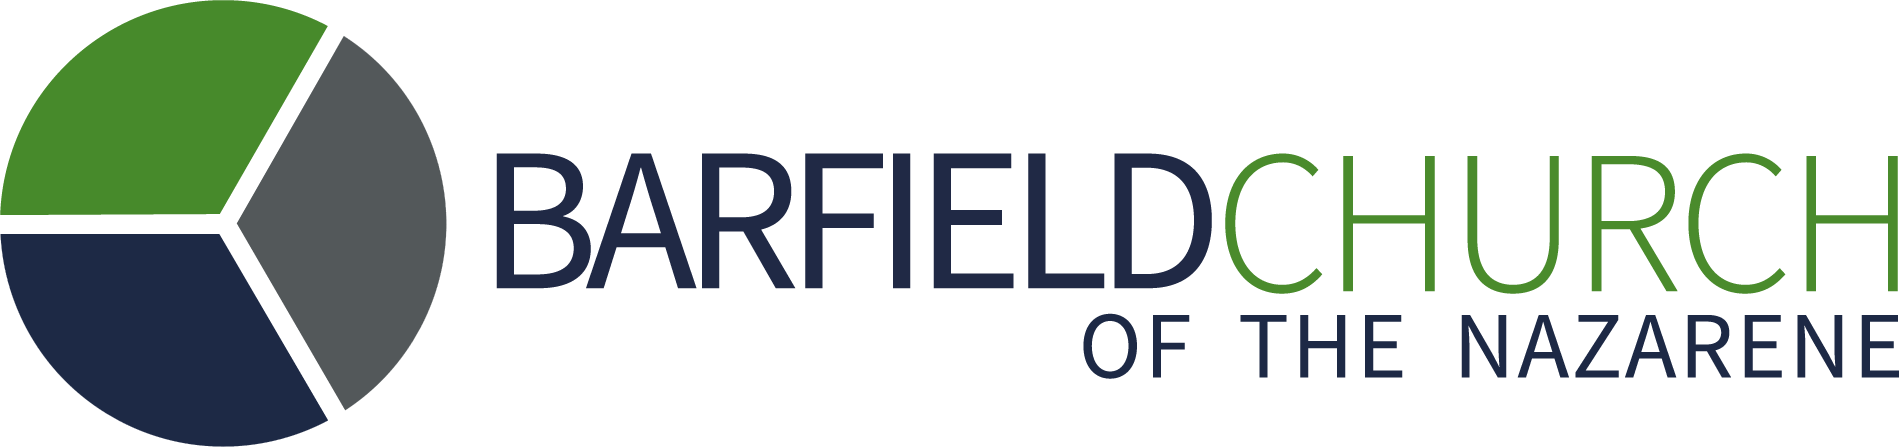 image of Barfield logo